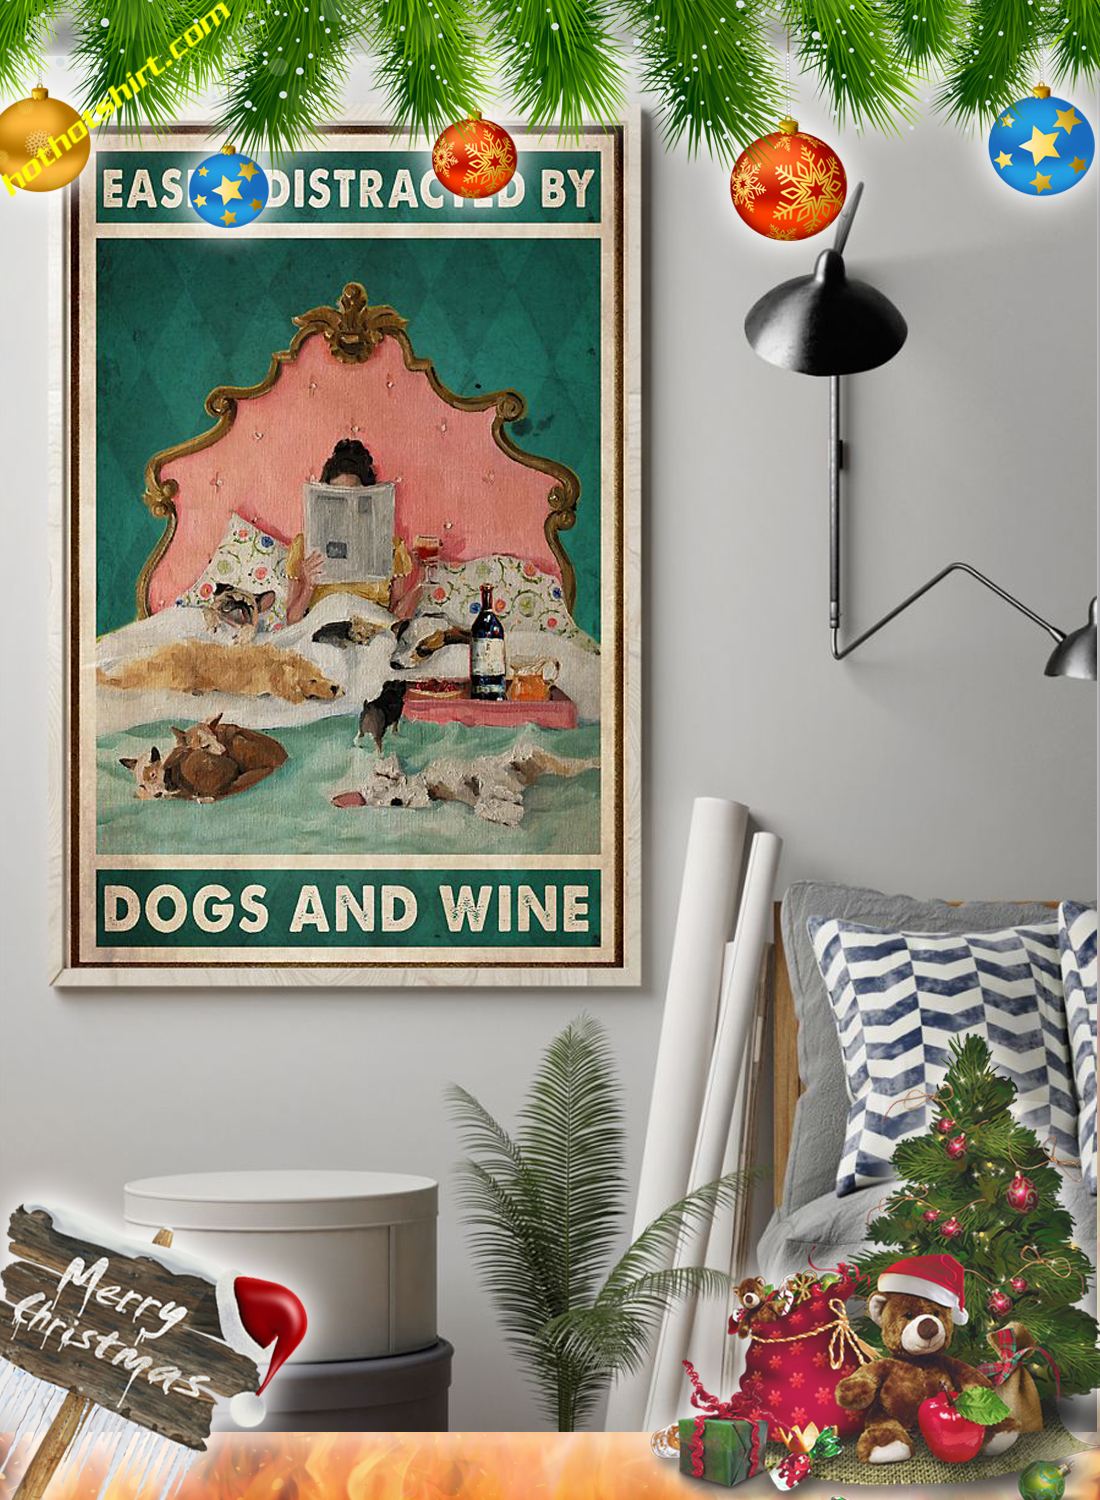 Girl In Bed Easily distracted by dogs and wine poster 1